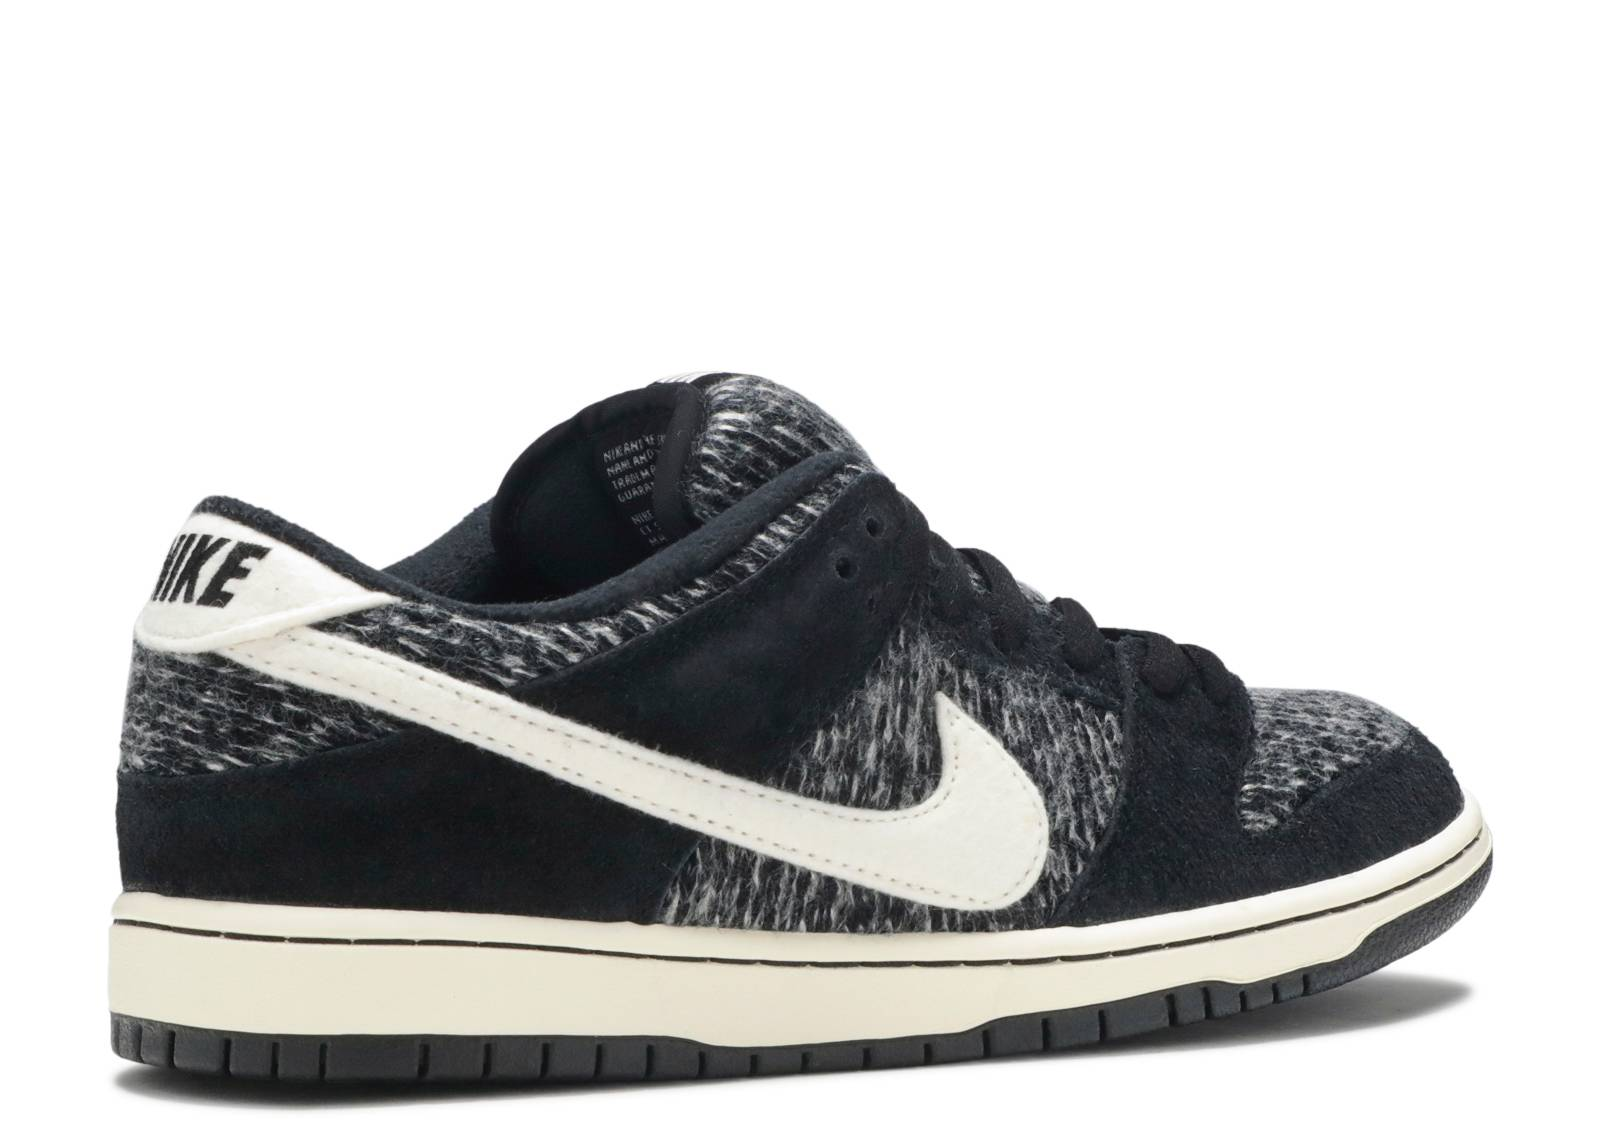 finest selection f58b8 ef8a5 nike dunk warmth